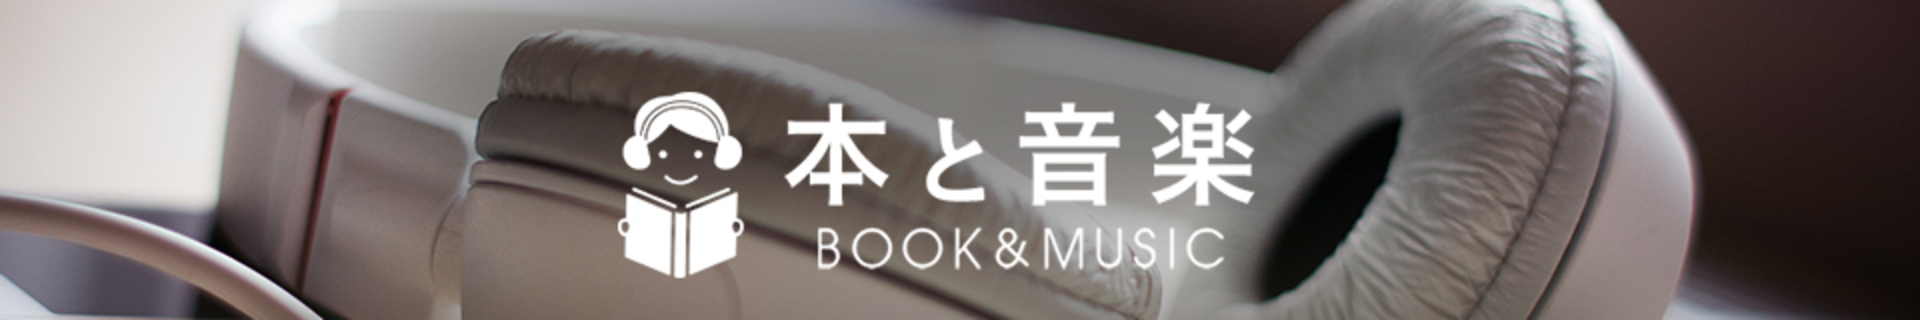 Book and music2